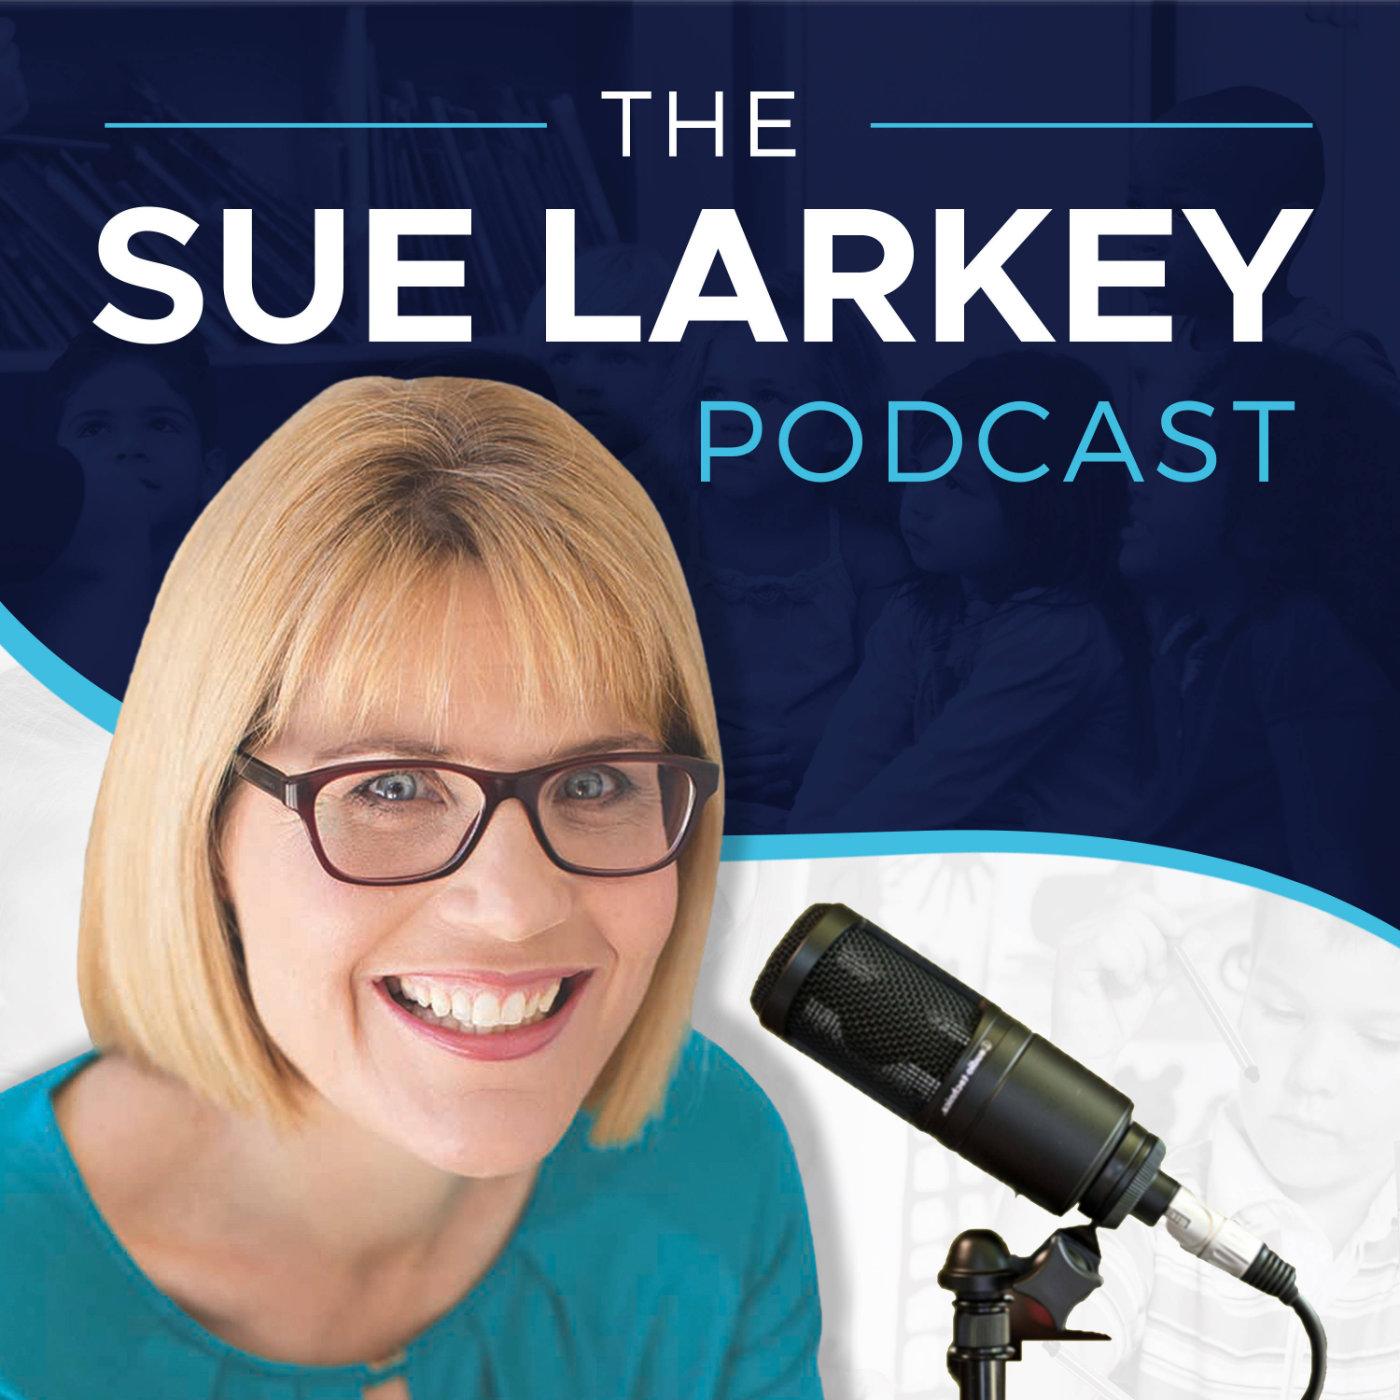 suelarkey's podcast